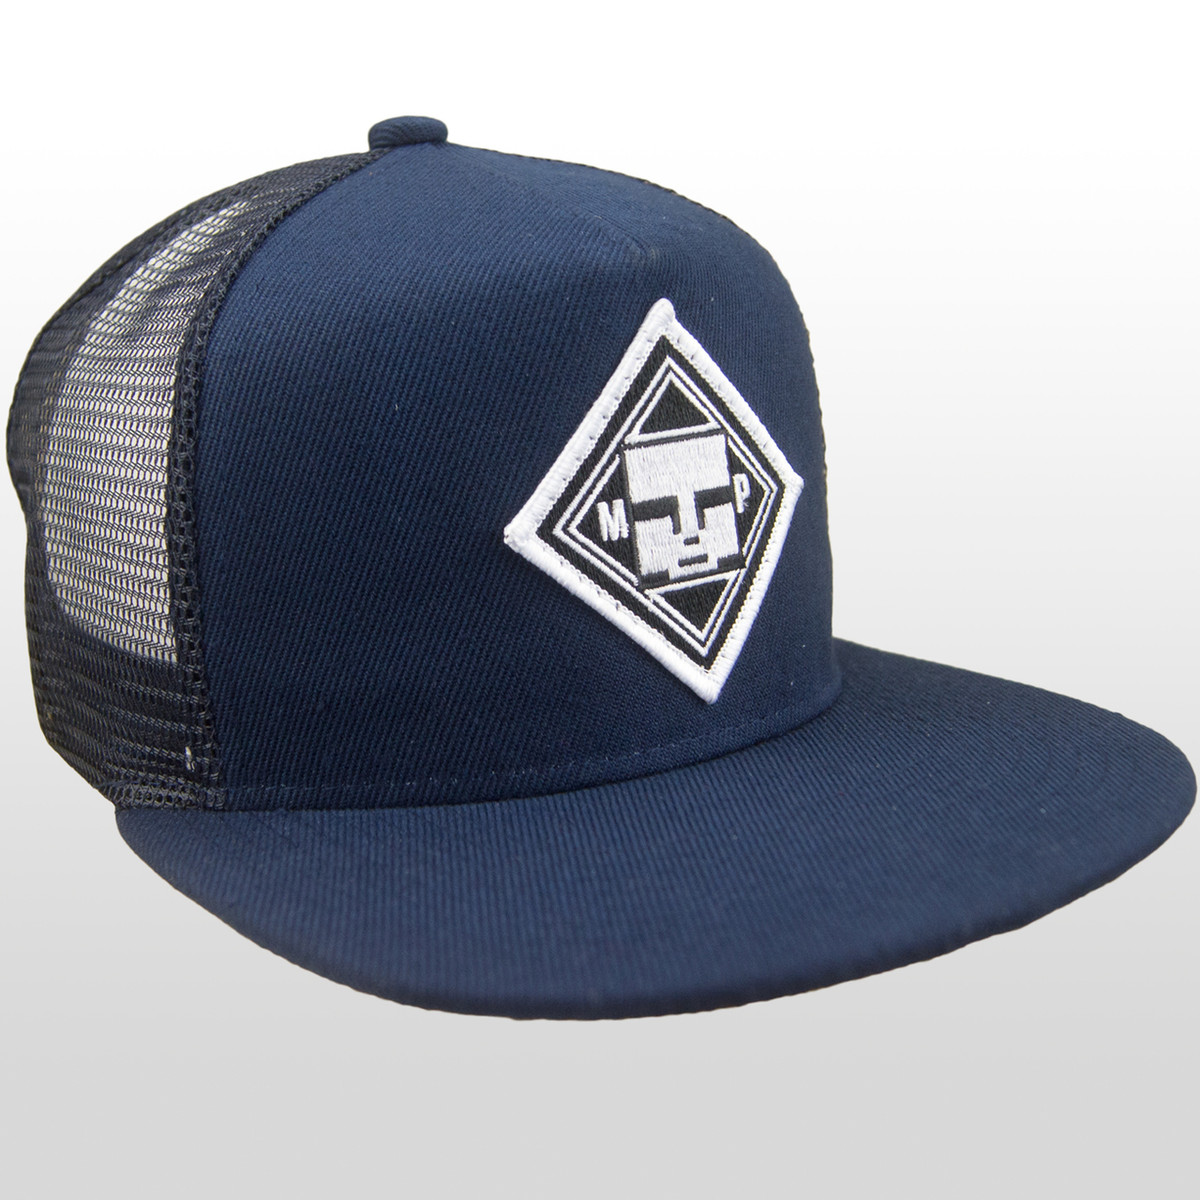 Front view of our Authentic Mind Plugs Navy Blue trucker hat with a firm  flat brim 8eda9bba0fc